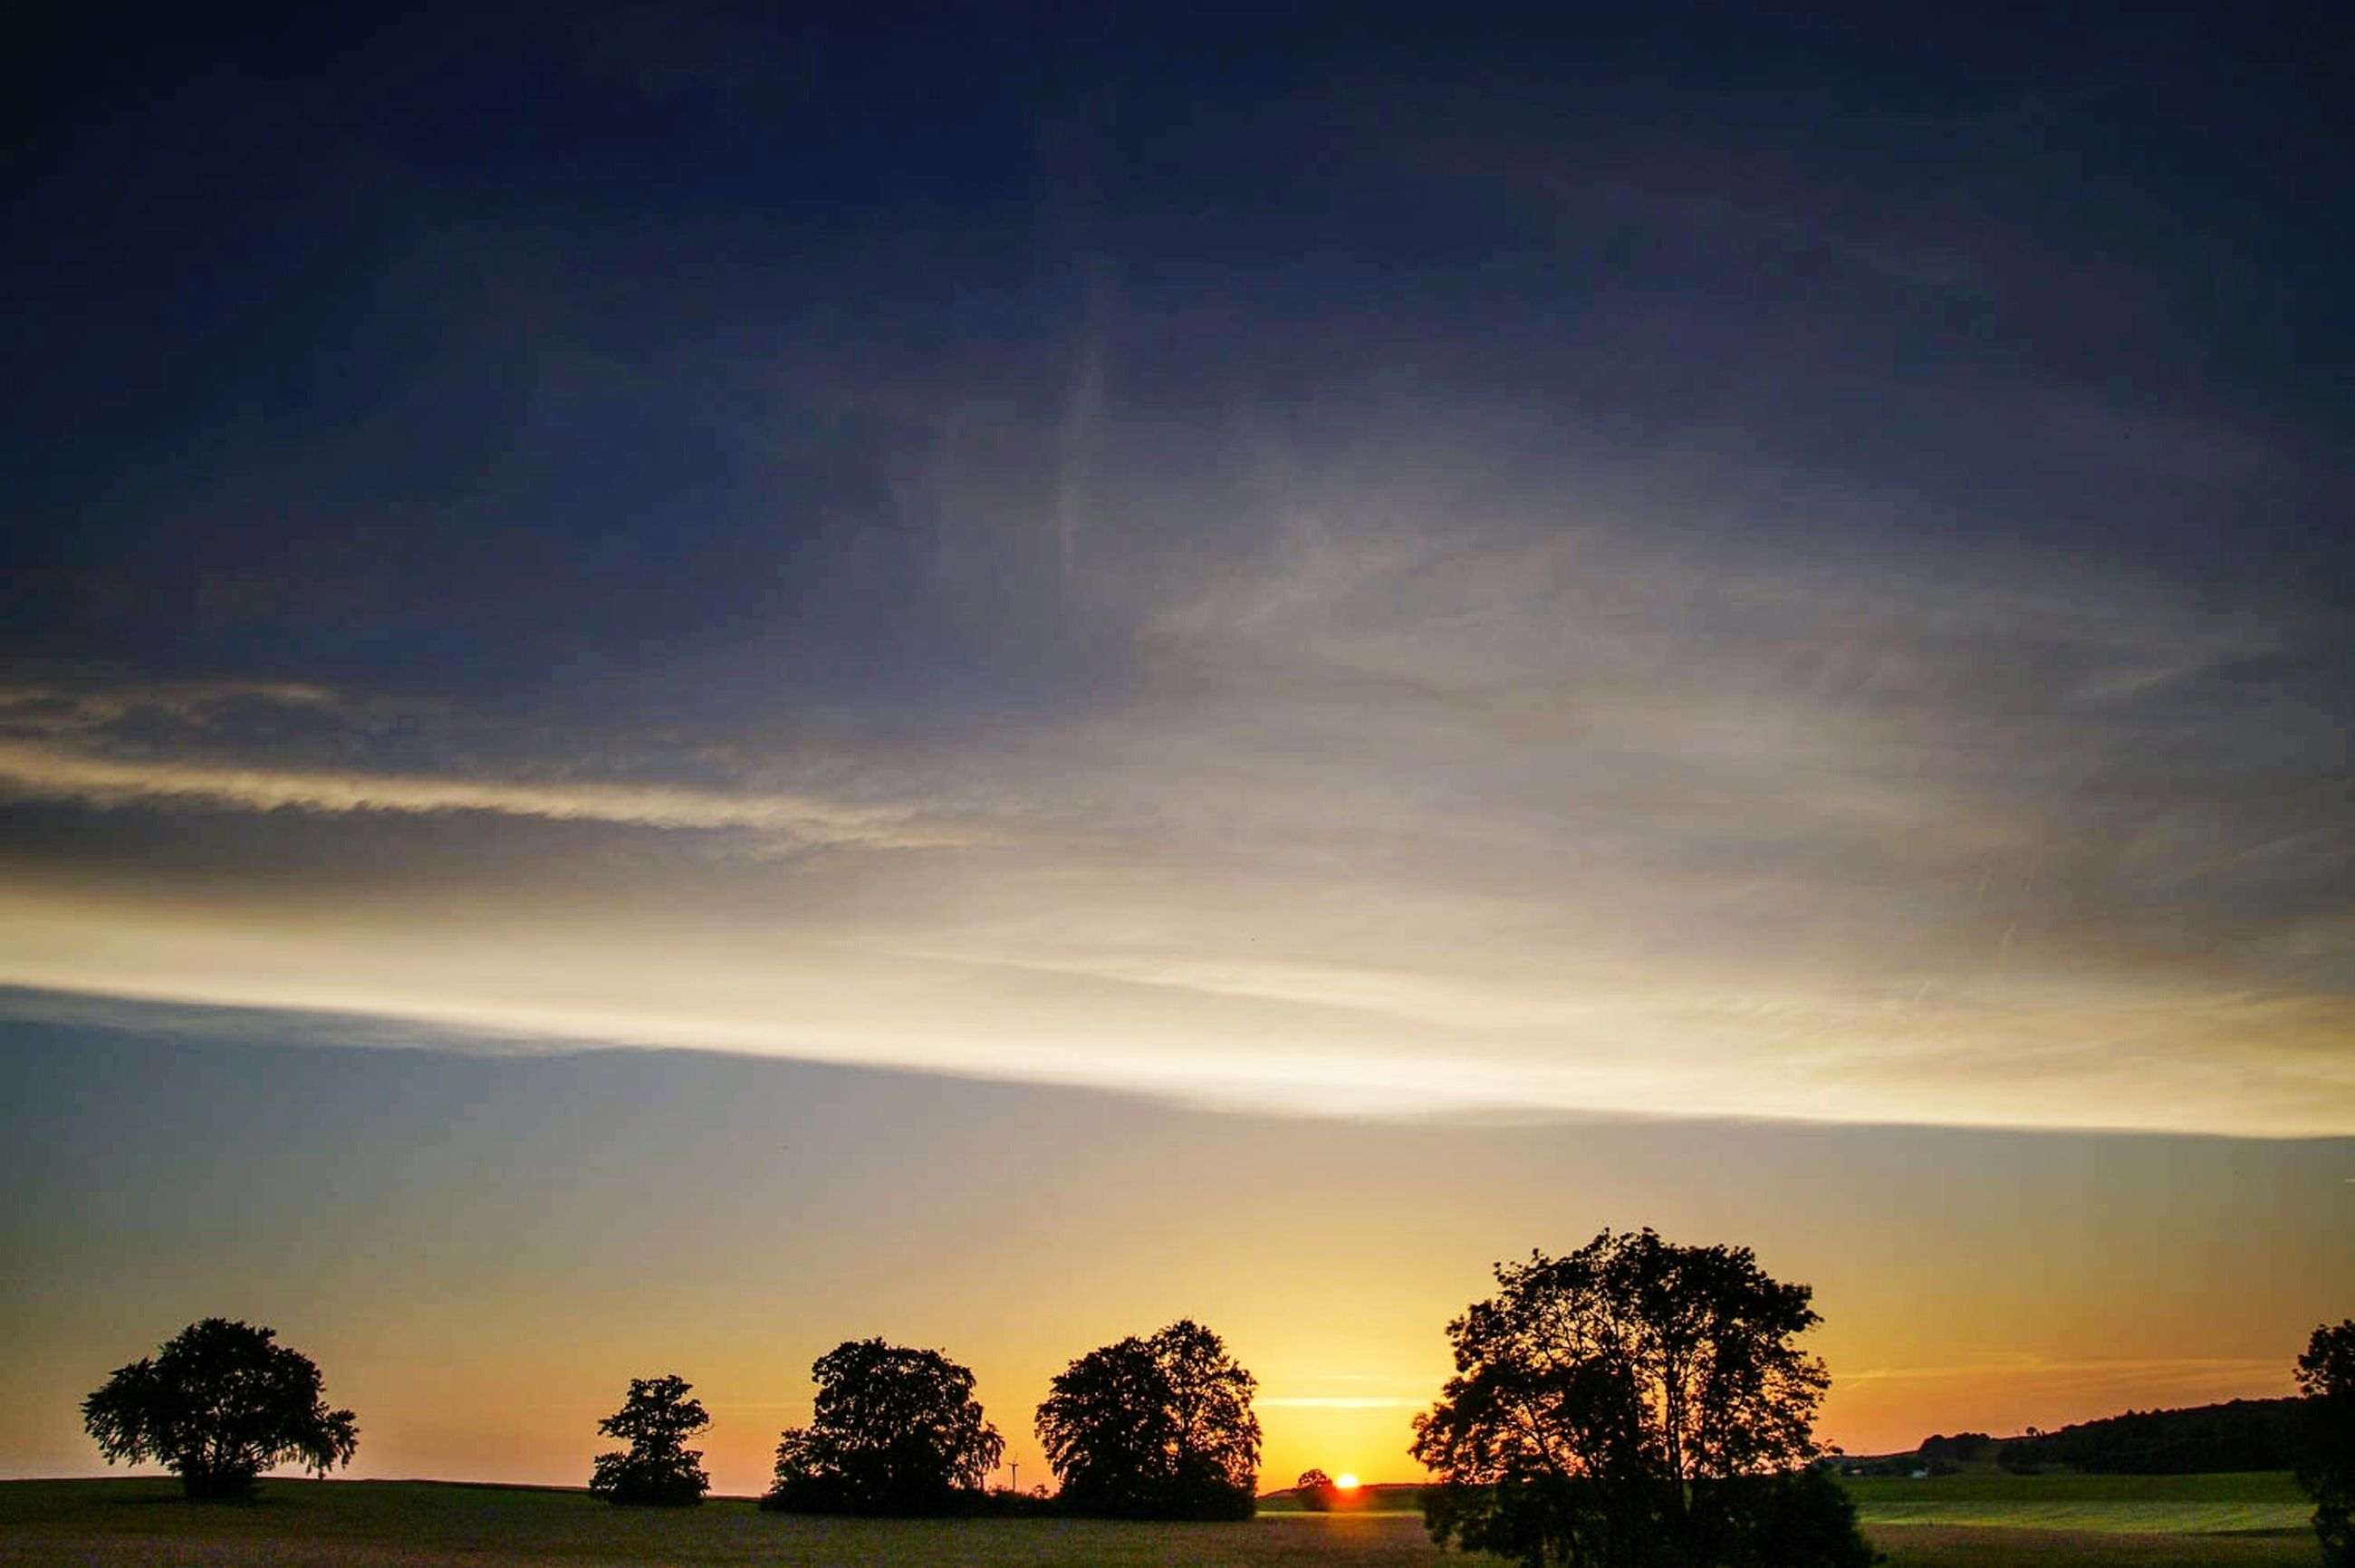 sunset, tree, sky, nature, silhouette, no people, landscape, cloud - sky, scenics, outdoors, beauty in nature, astronomy, day